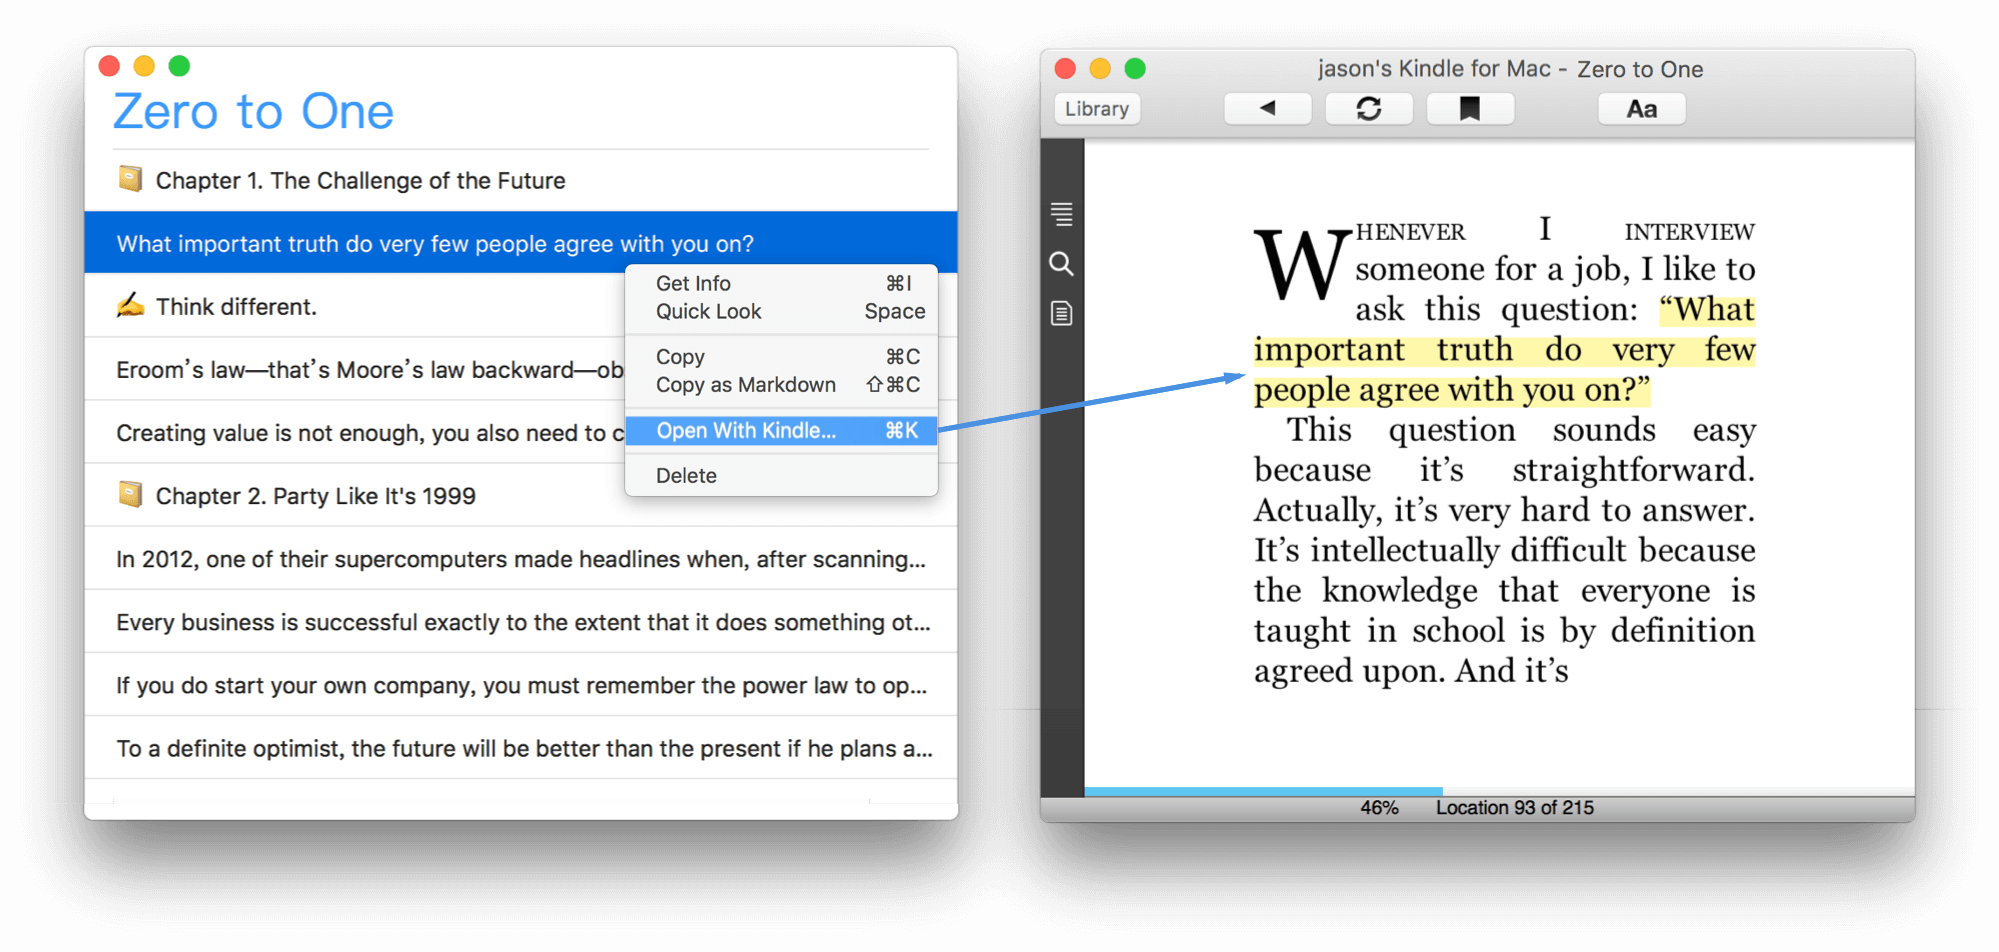 Klib support reviewing Kindle highlights and notes on macOS. Support open Kindle for macOS to review context of highlights and notes.